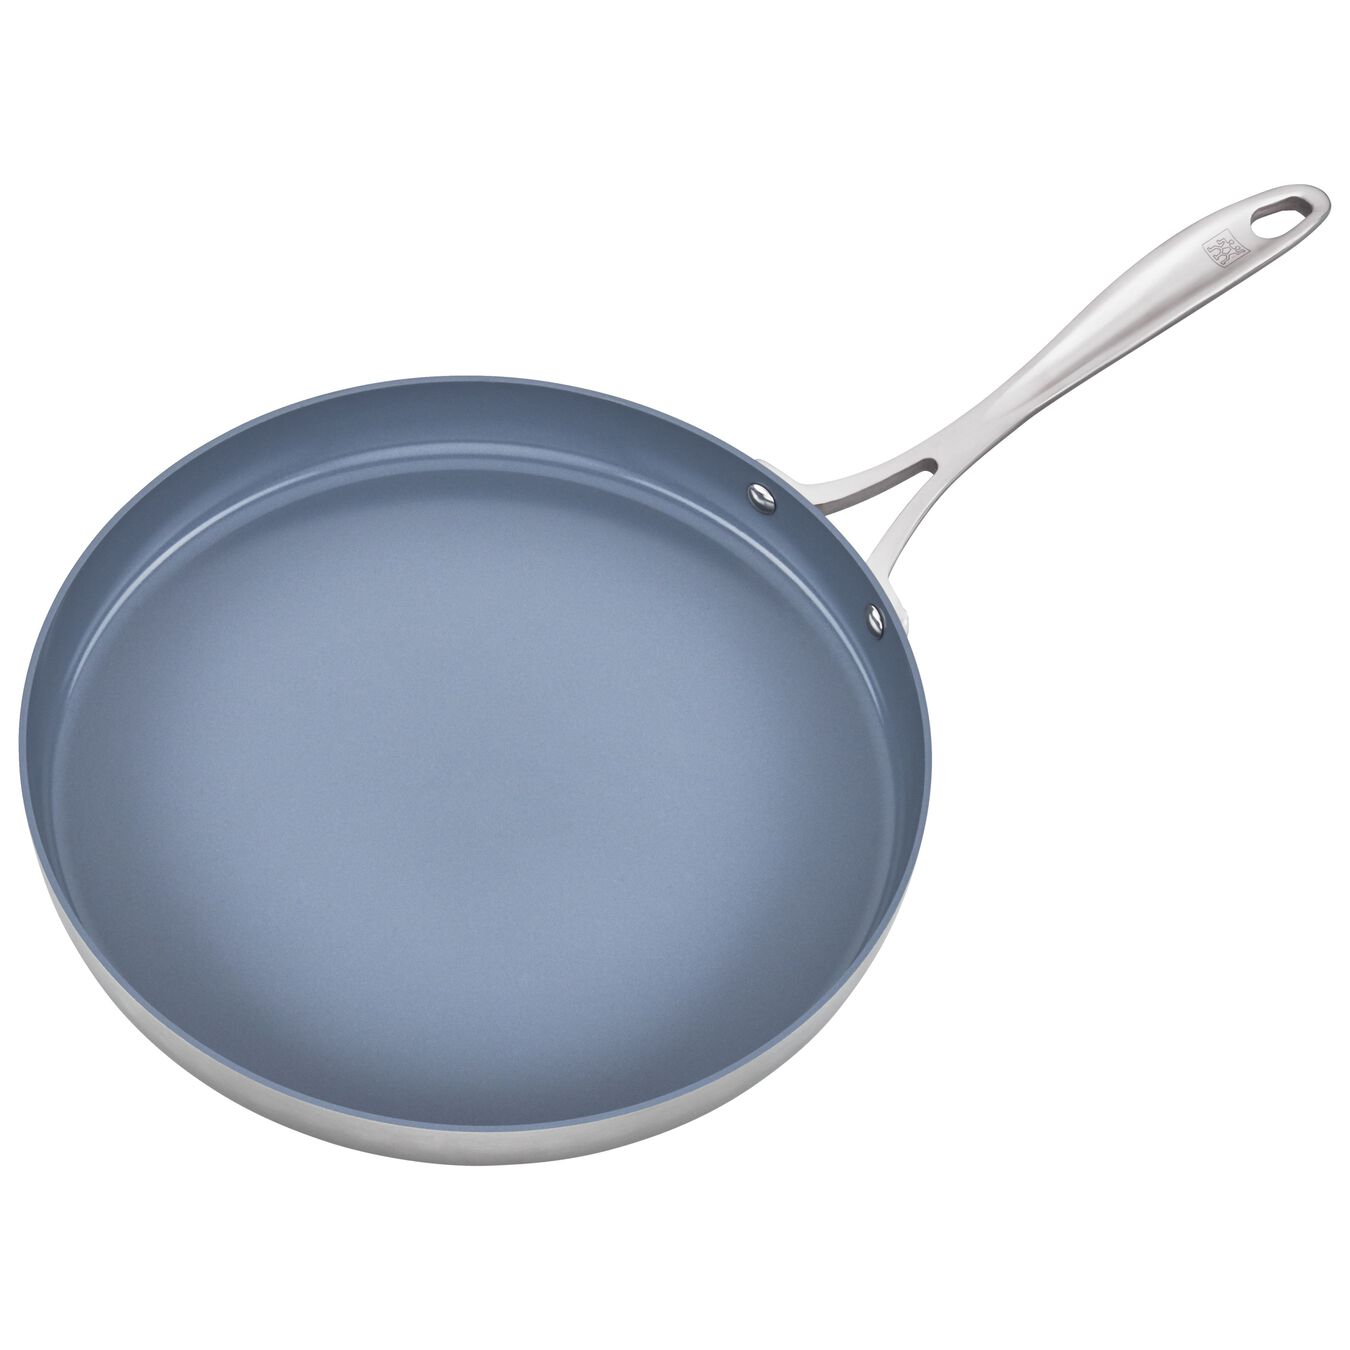 3-ply 12-inch Stainless Steel Ceramic Nonstick Griddle,,large 2